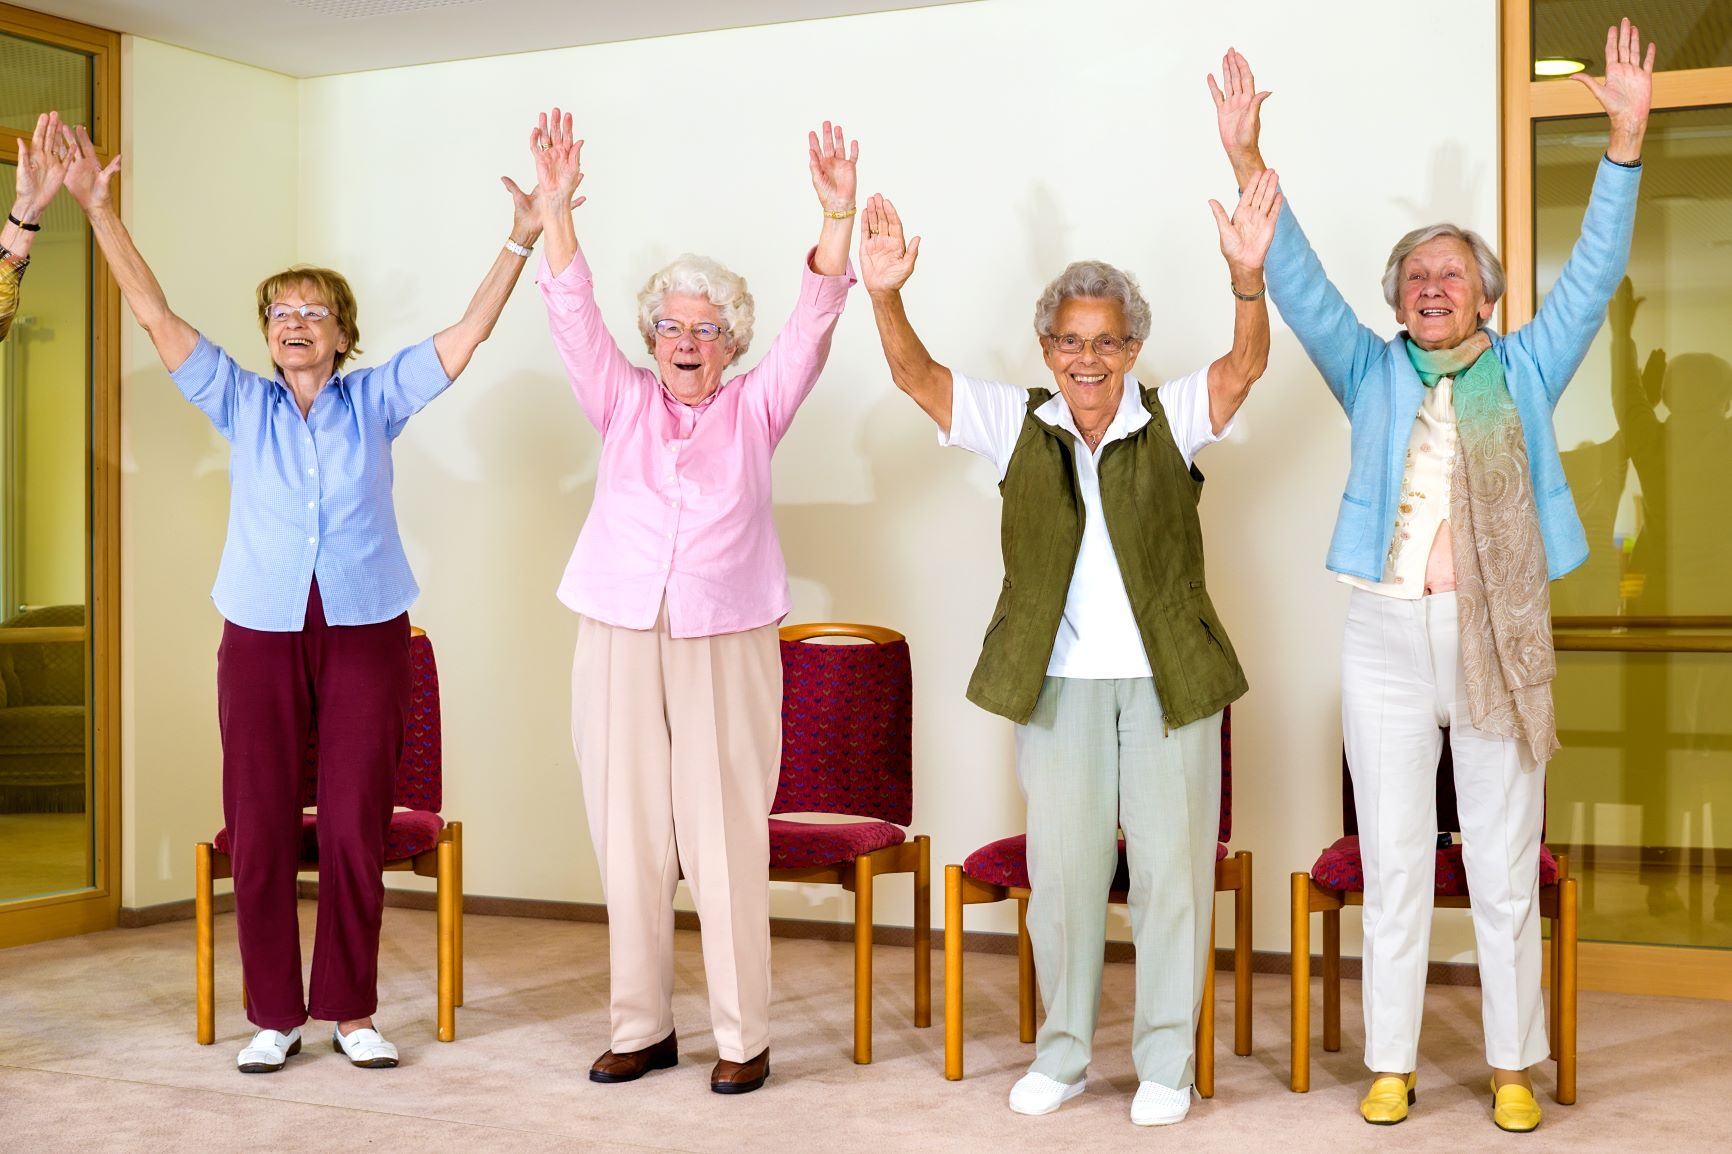 Strong Seniors - Senior Fitness! Get Moving With Your Library